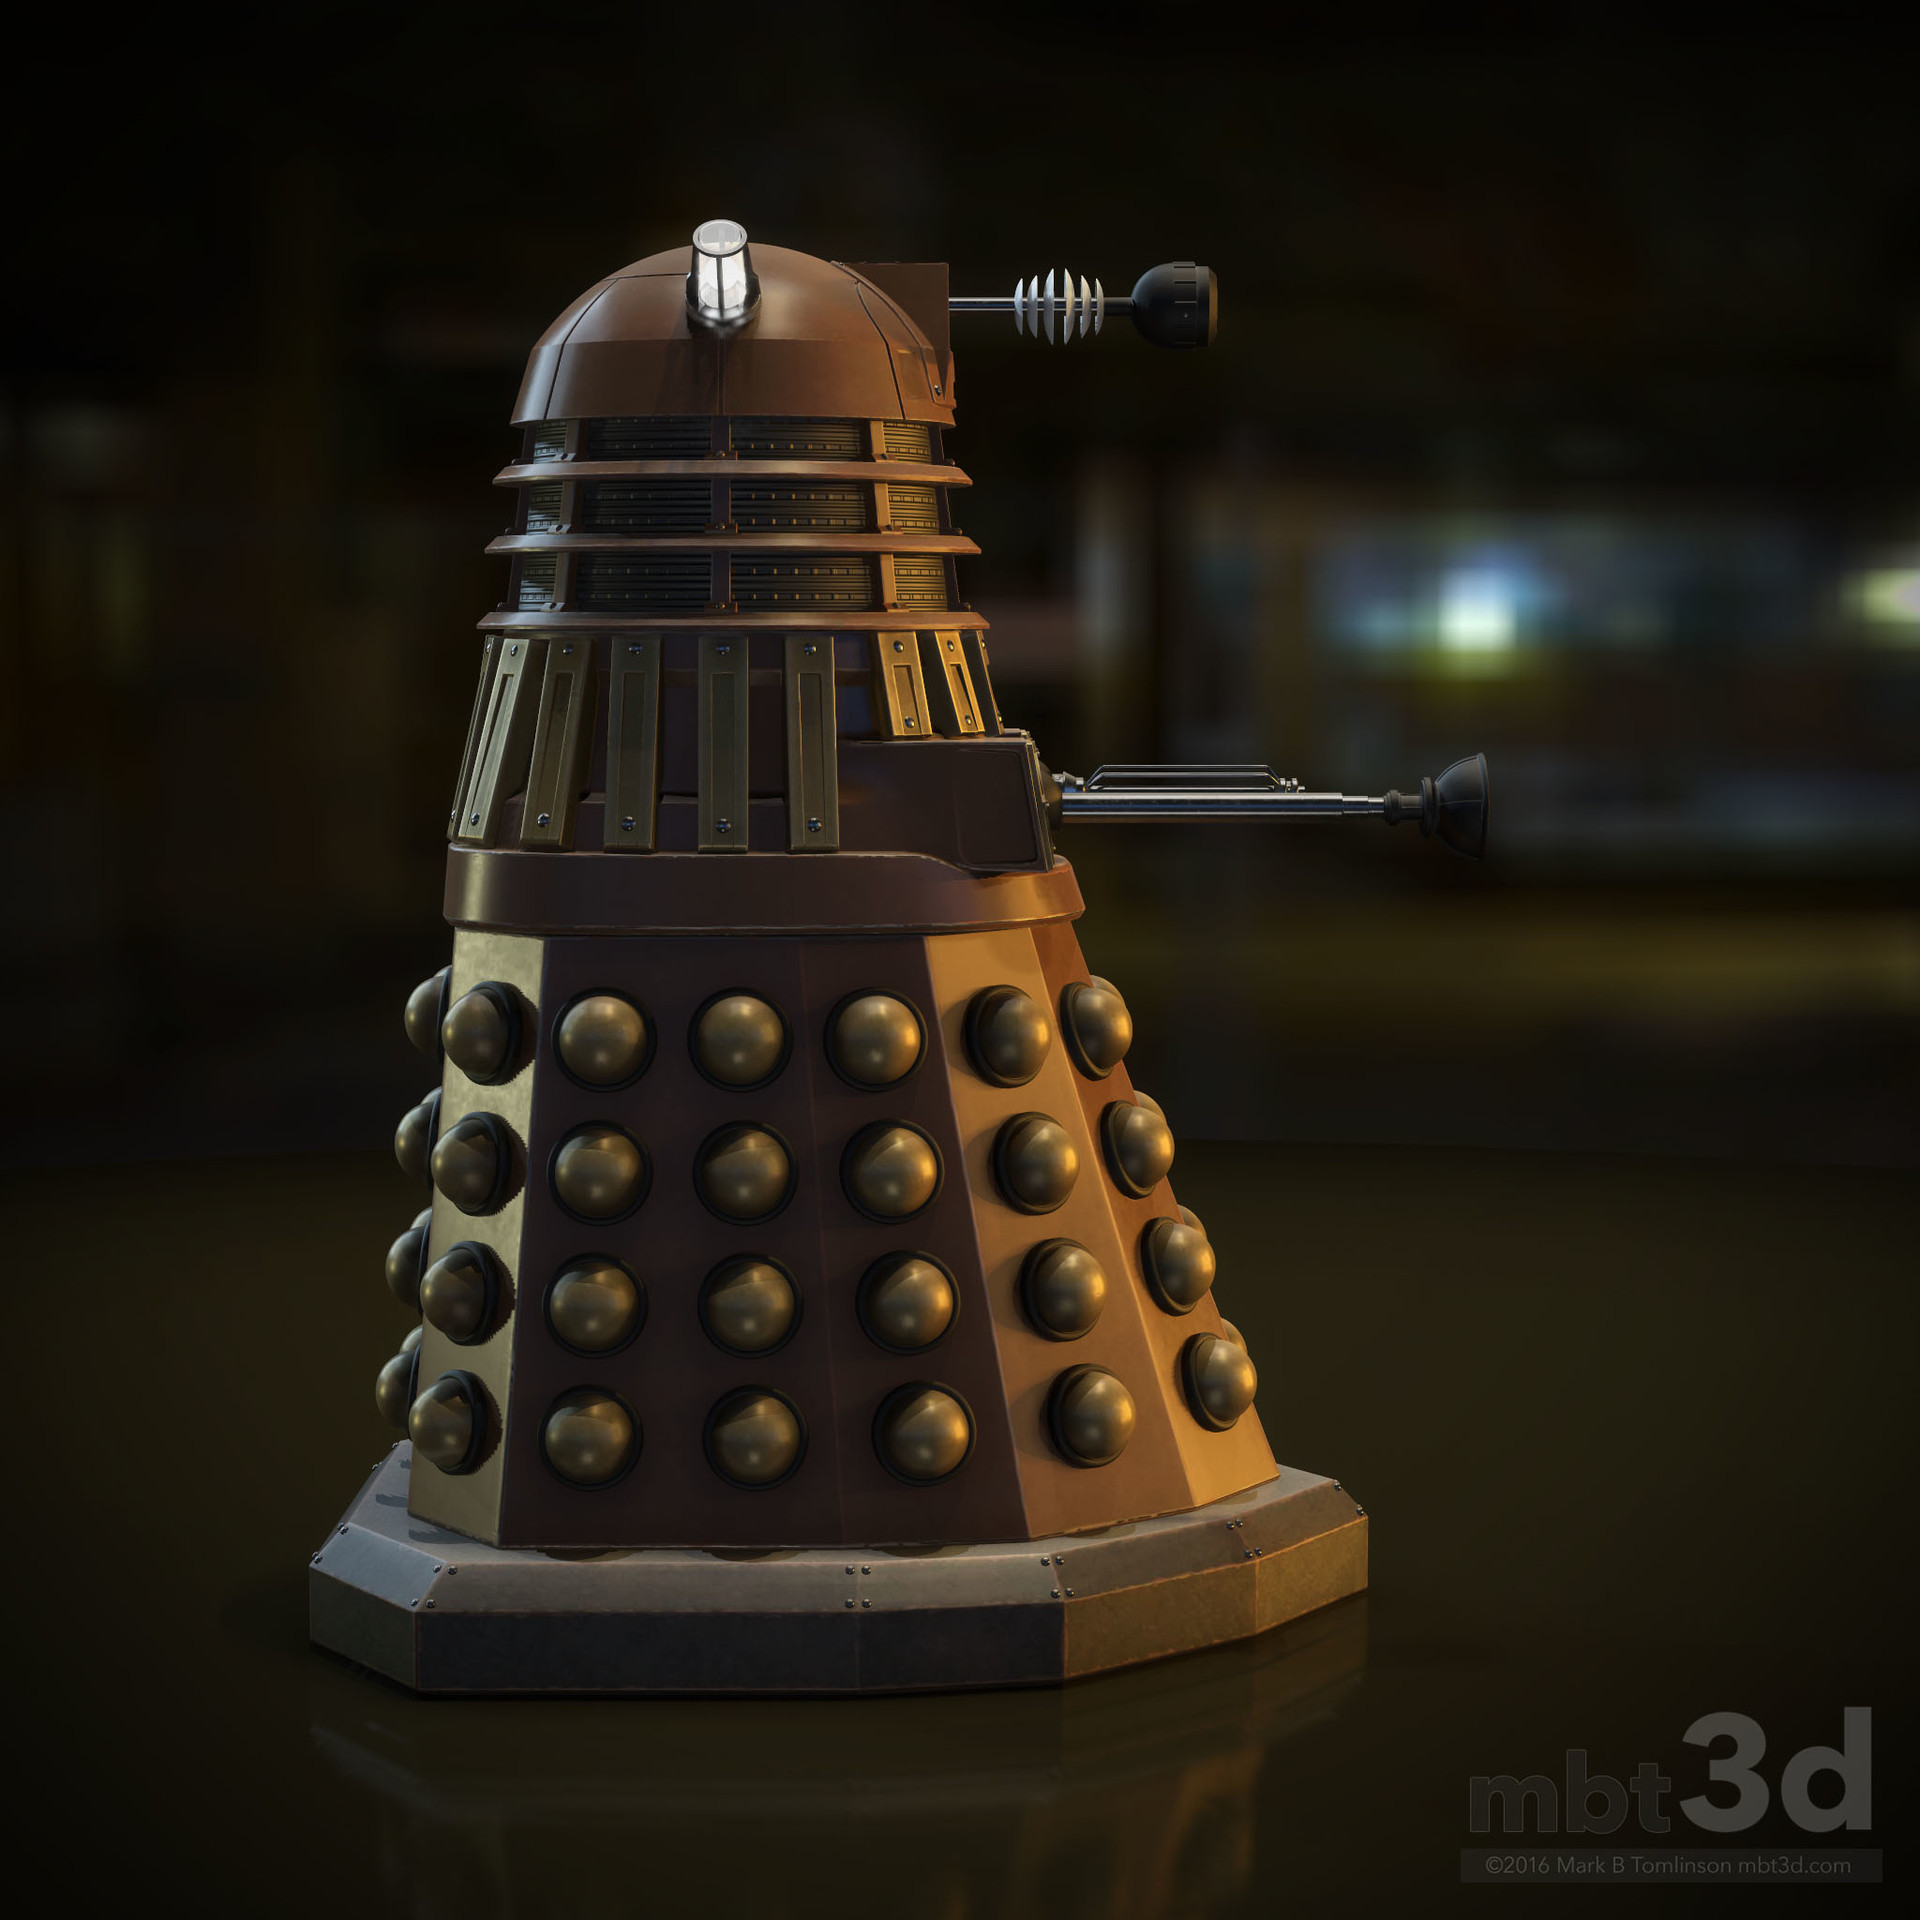 Mark b tomlinson dalek toolbag render final 2k 0001 2